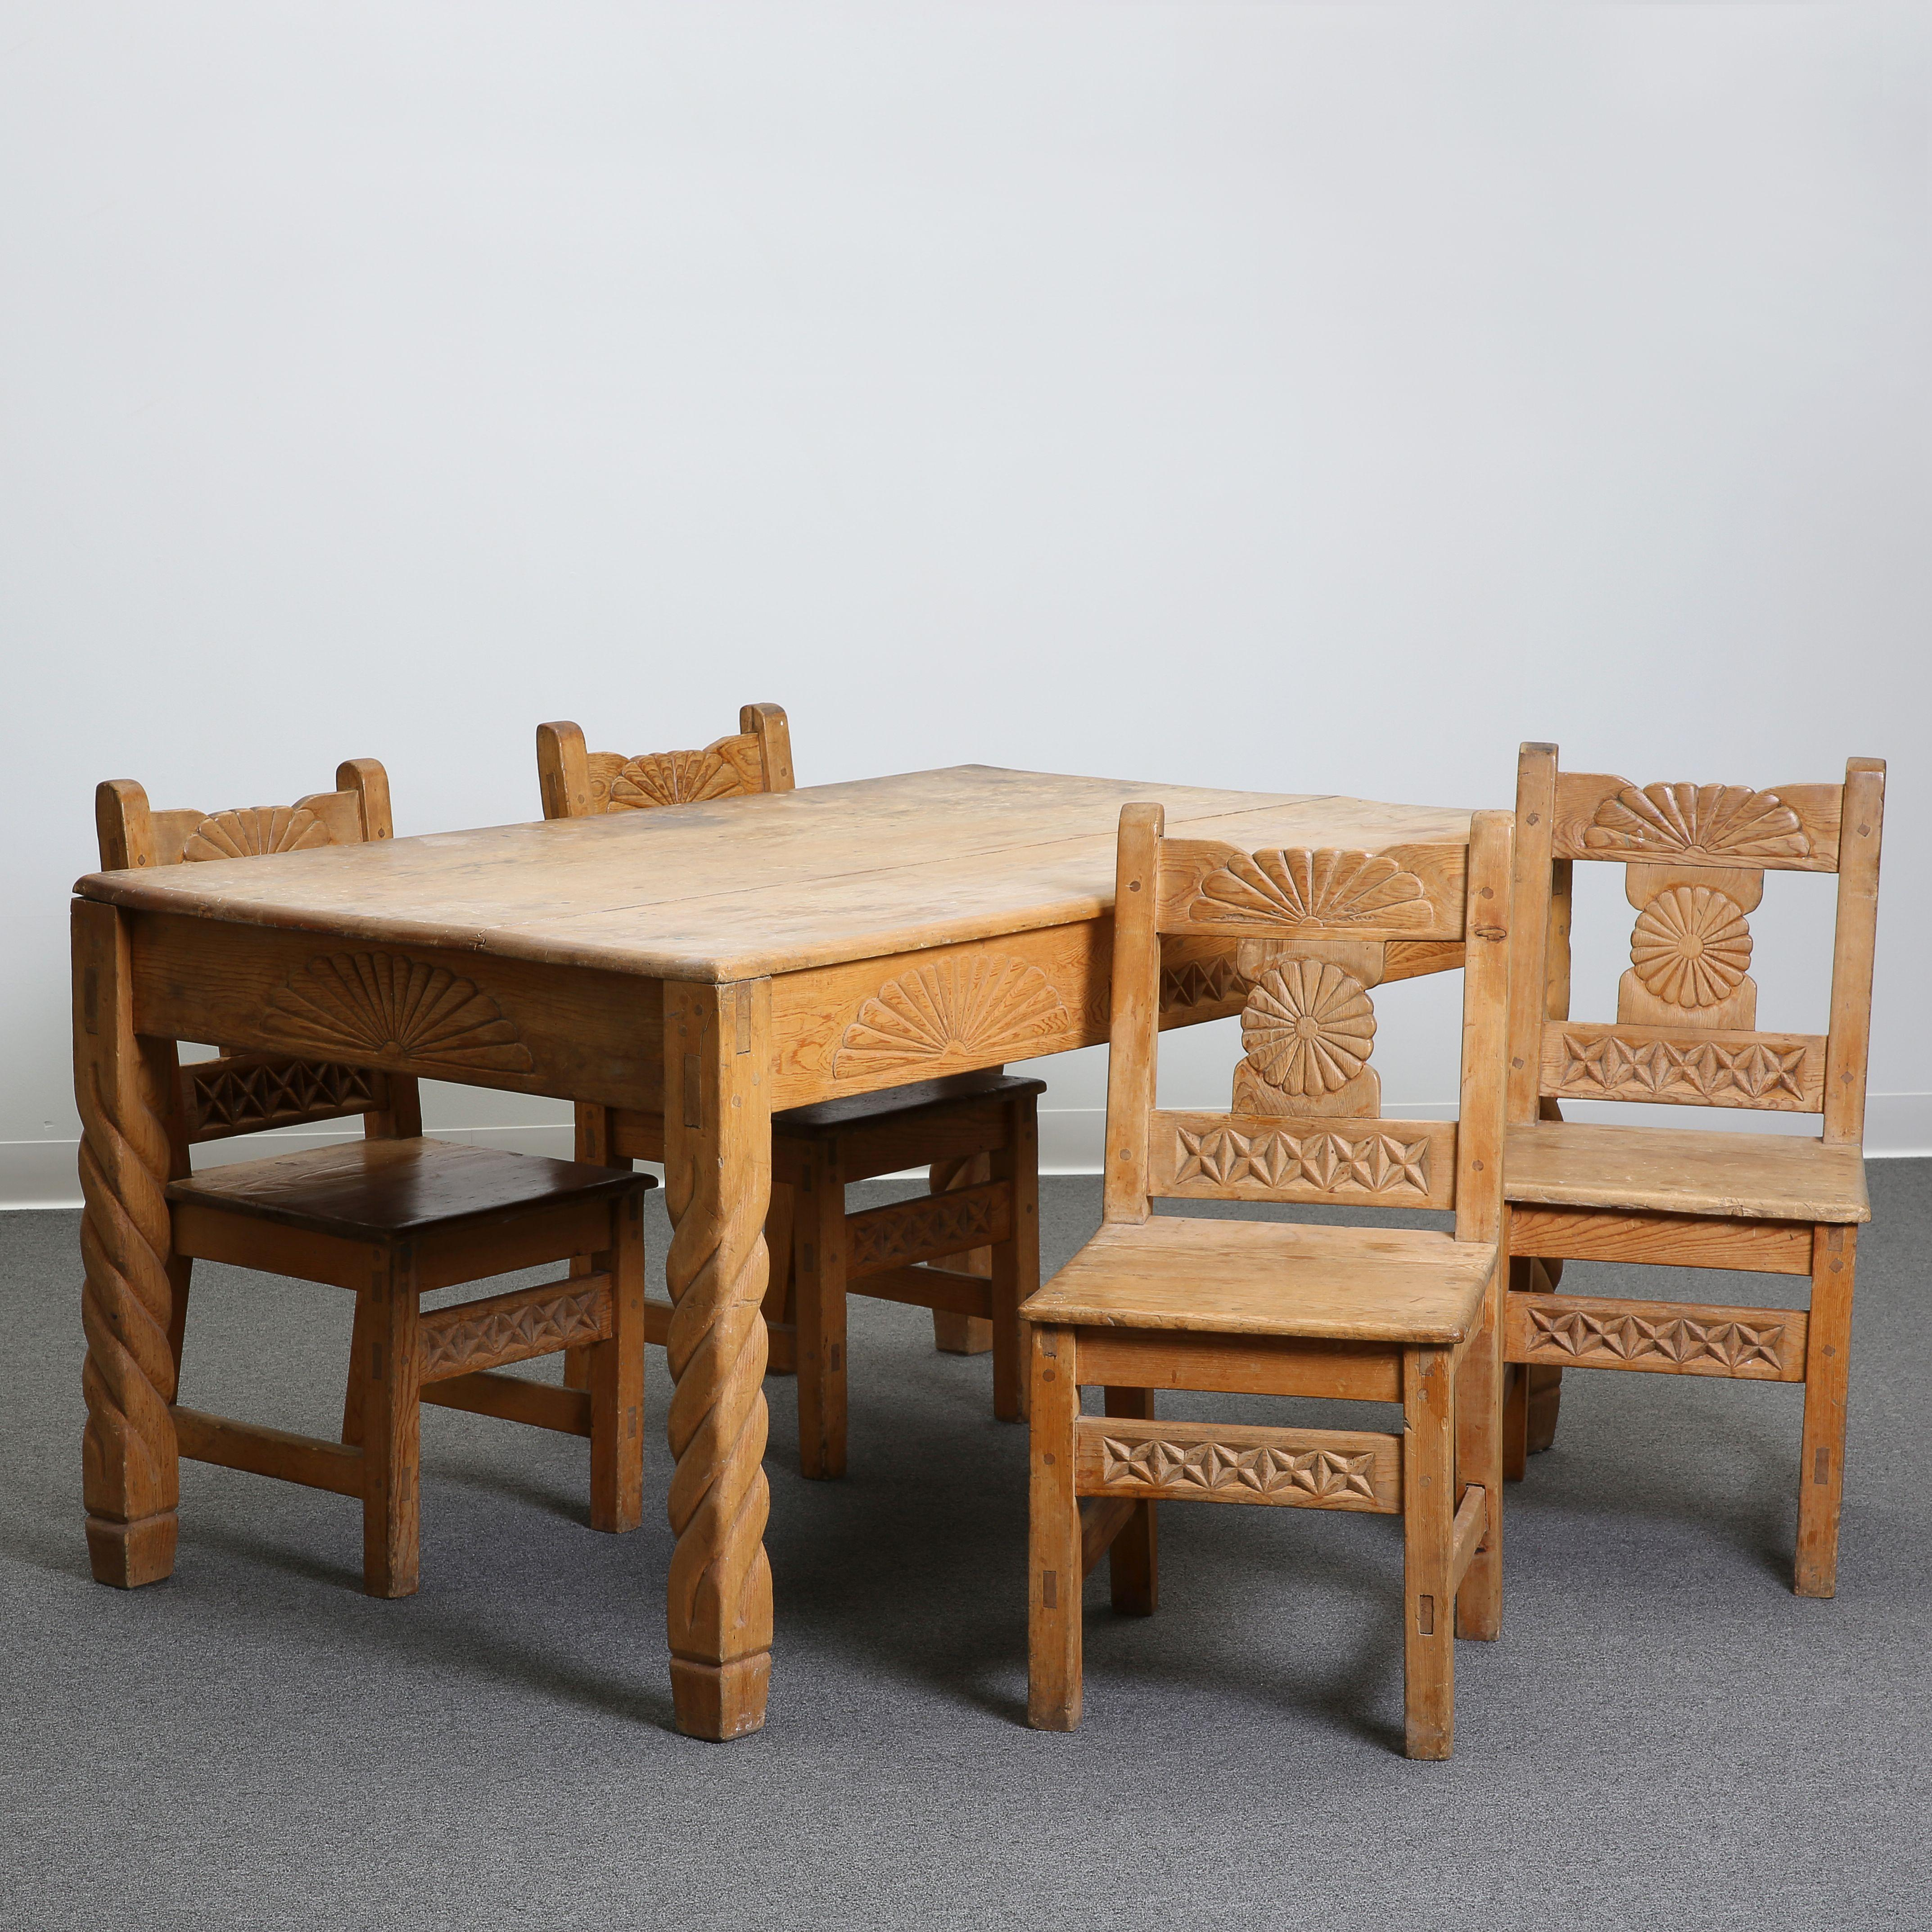 New Mexico, Revival Style, Table and Four Chairs